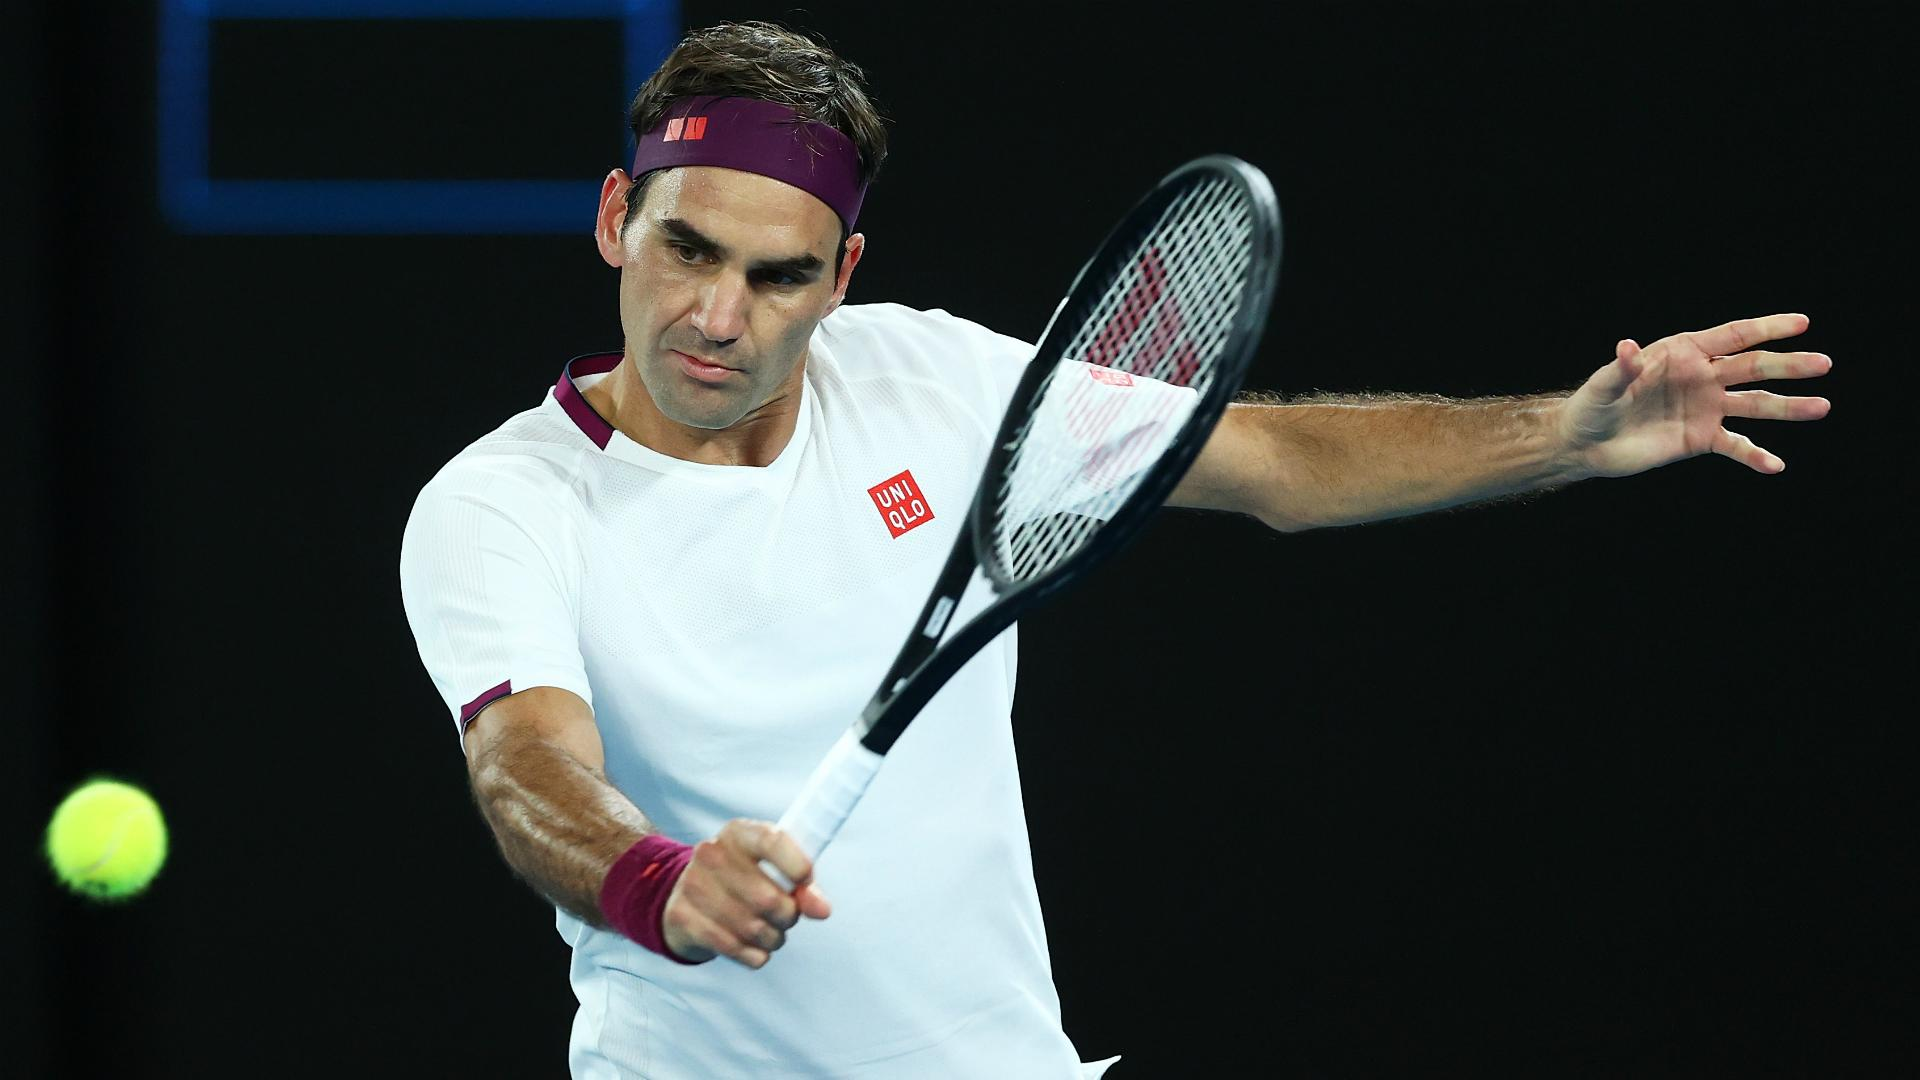 Australian Open 2020: Roger Federer results and form ahead of quarter-final  with Tennys Sandgren